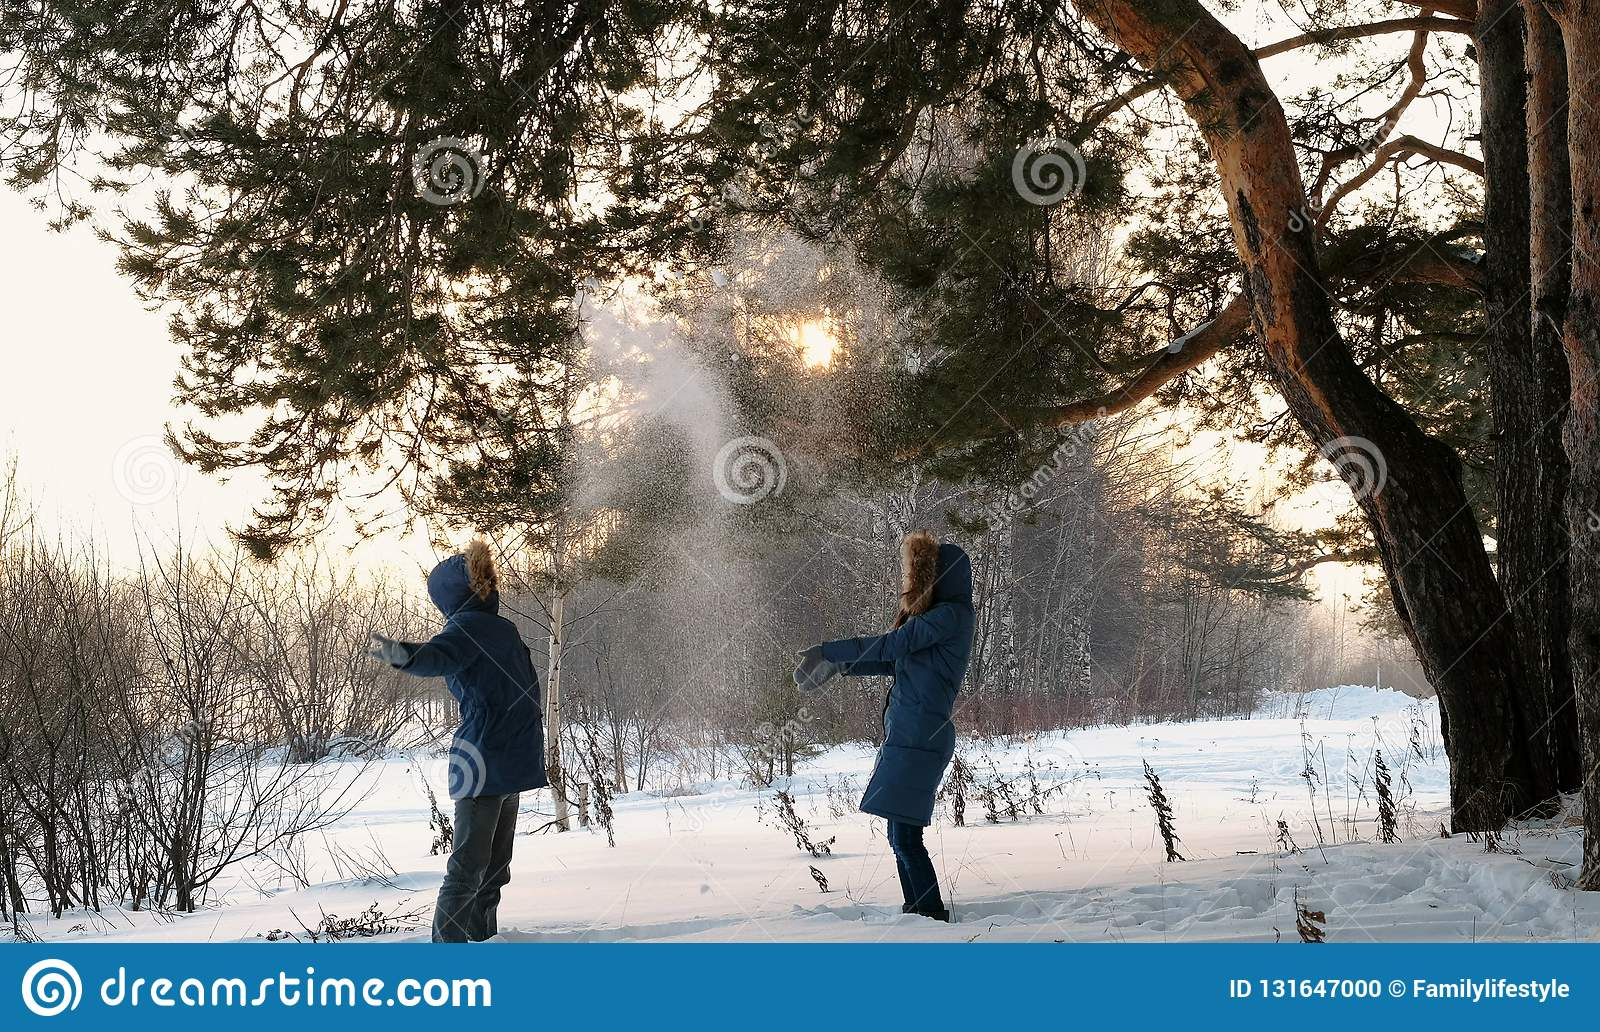 Man and woman playing snowballs in the winter forest. Sunset in the winter forest.